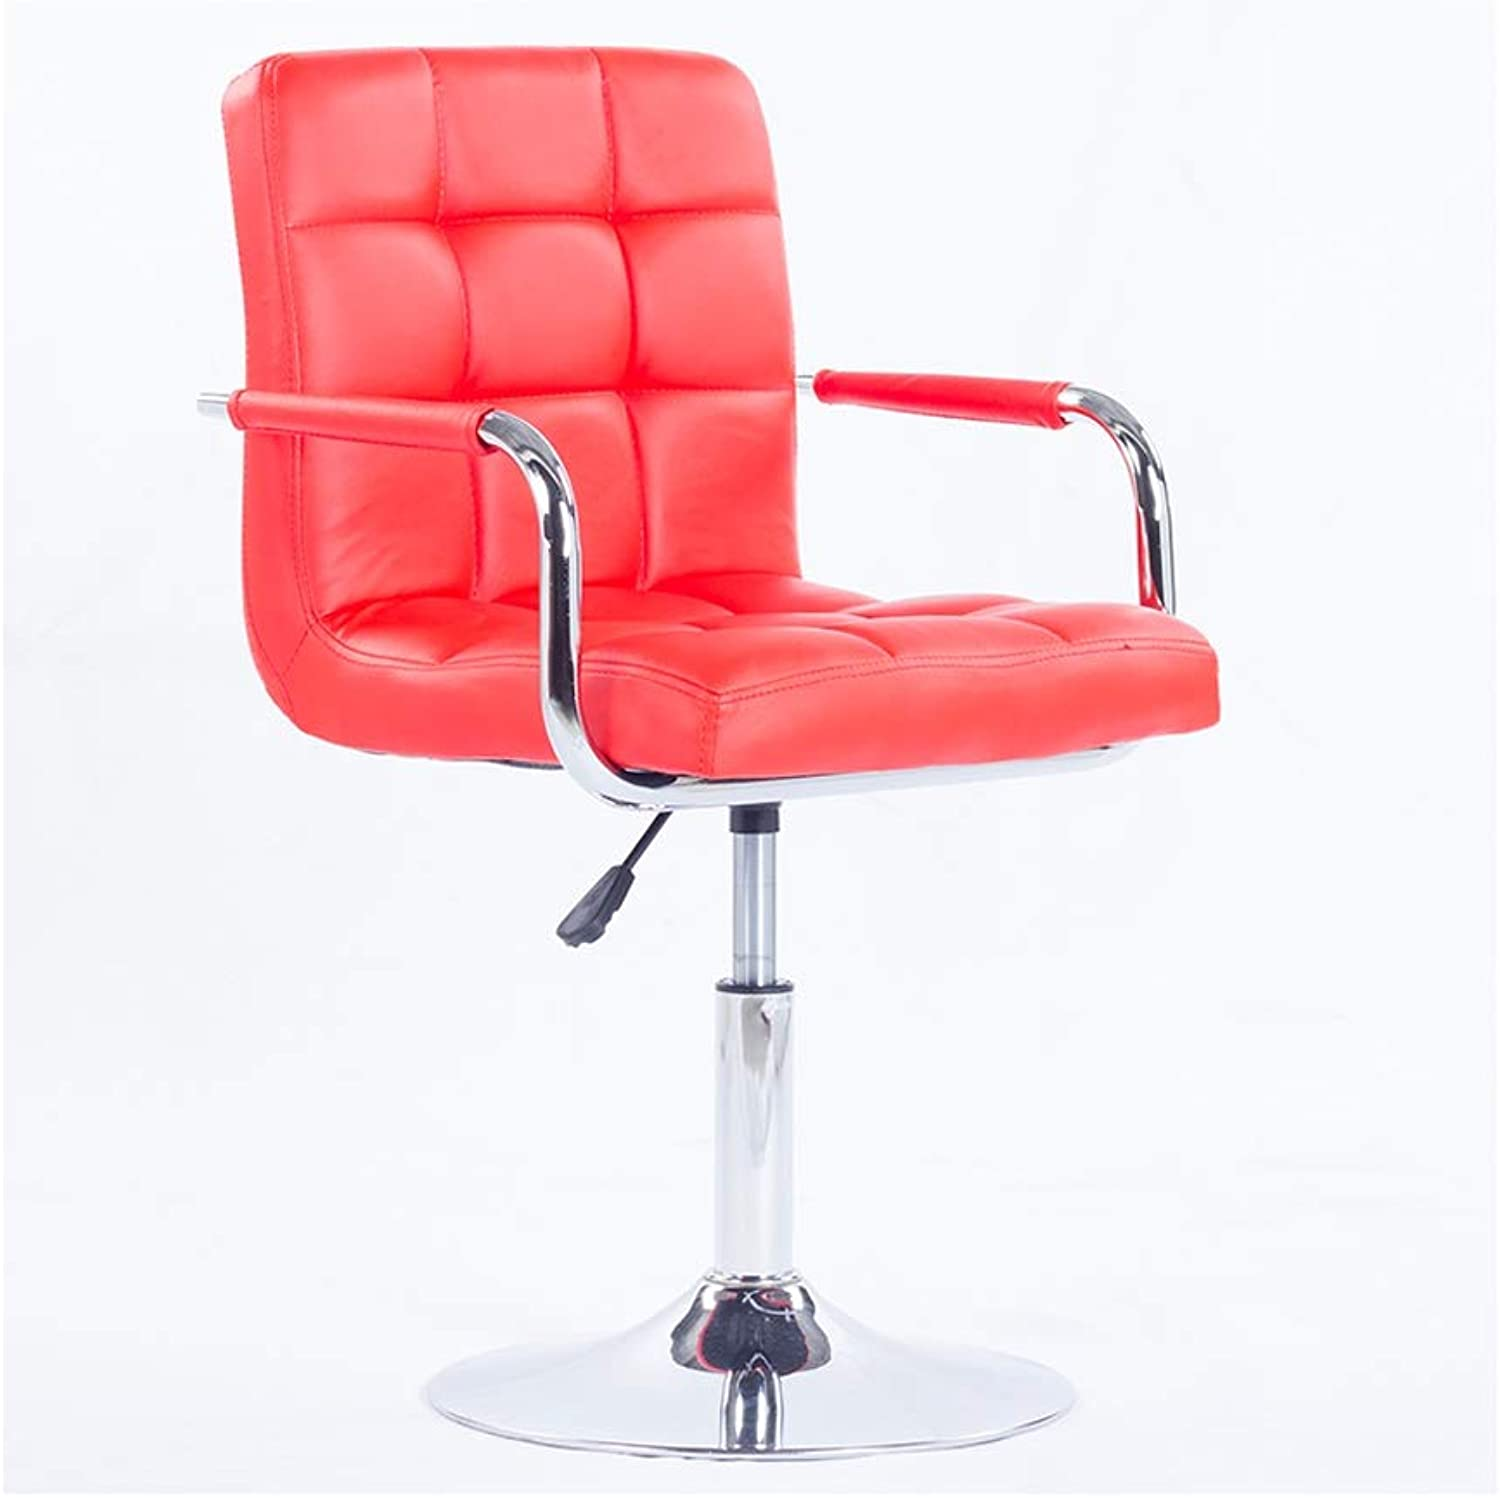 A+ Boss Stool Home redating Back Bar Chair High Elastic Sponge Filled Computer Chair PU Leather 9 color 41cm  82-94cm (color   Red)